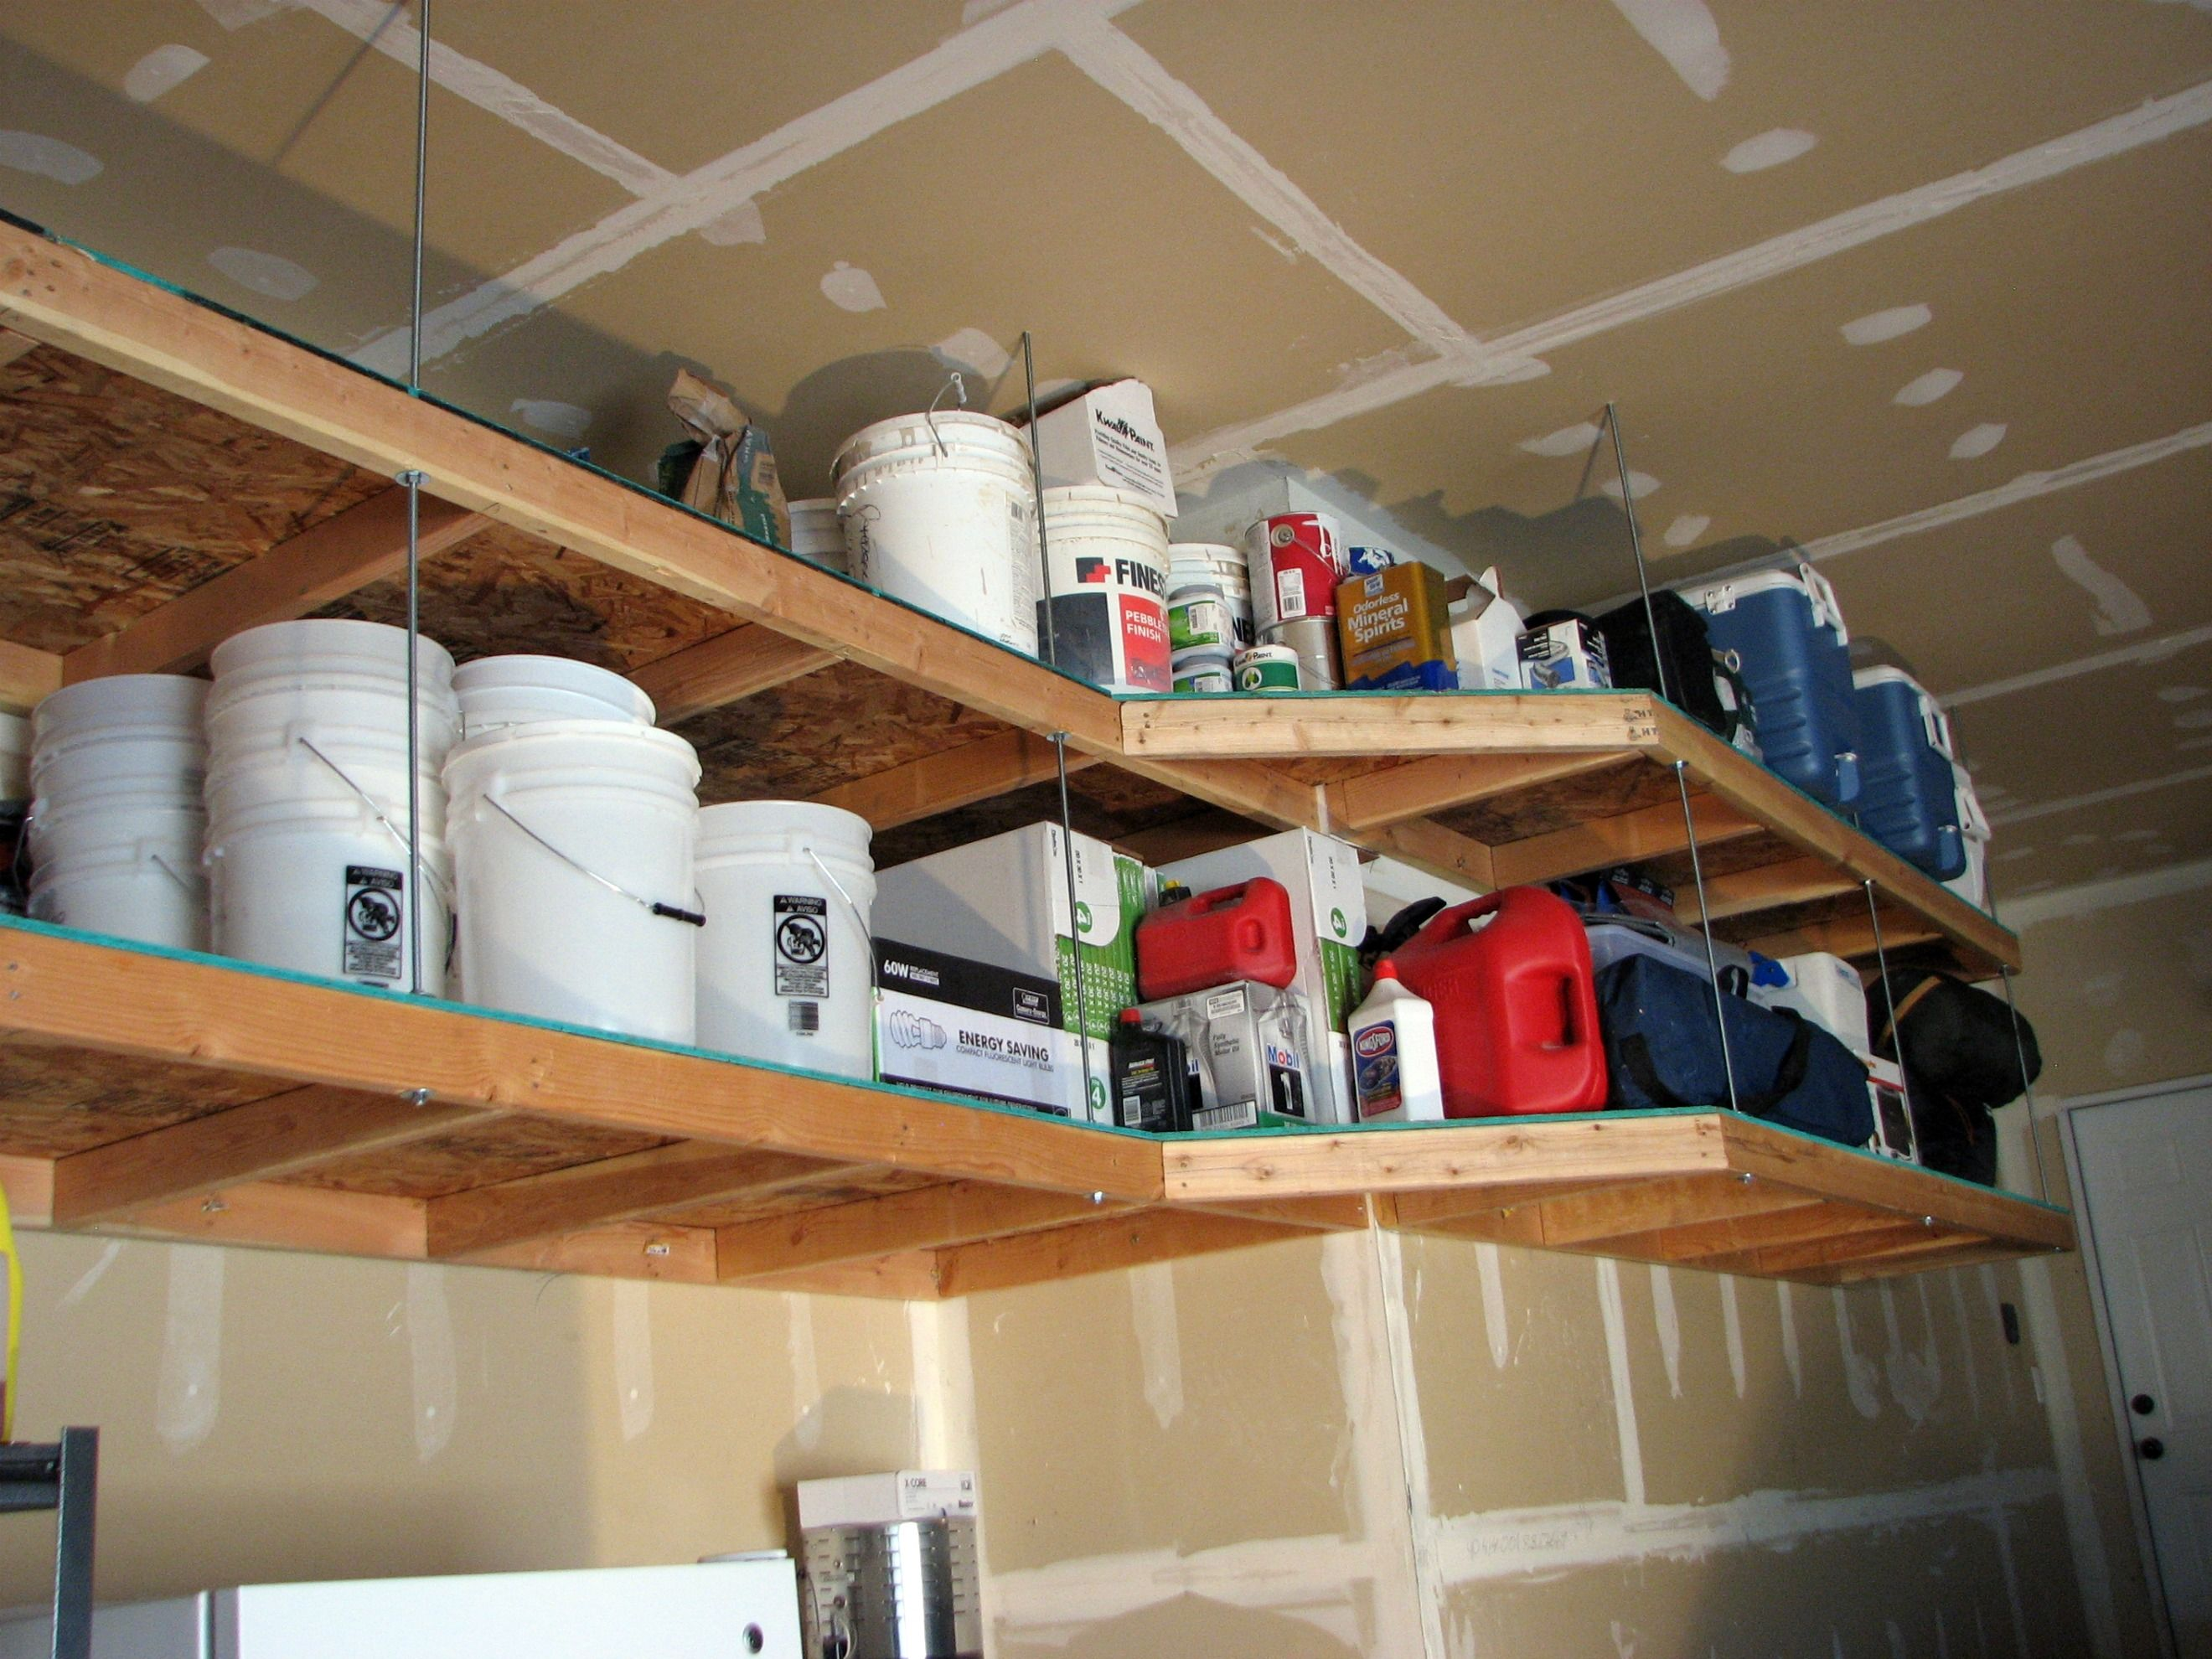 17 Best images about Garage on Pinterest   Ceilings  Easy diy and Garage  shelf. 17 Best images about Garage on Pinterest   Ceilings  Easy diy and